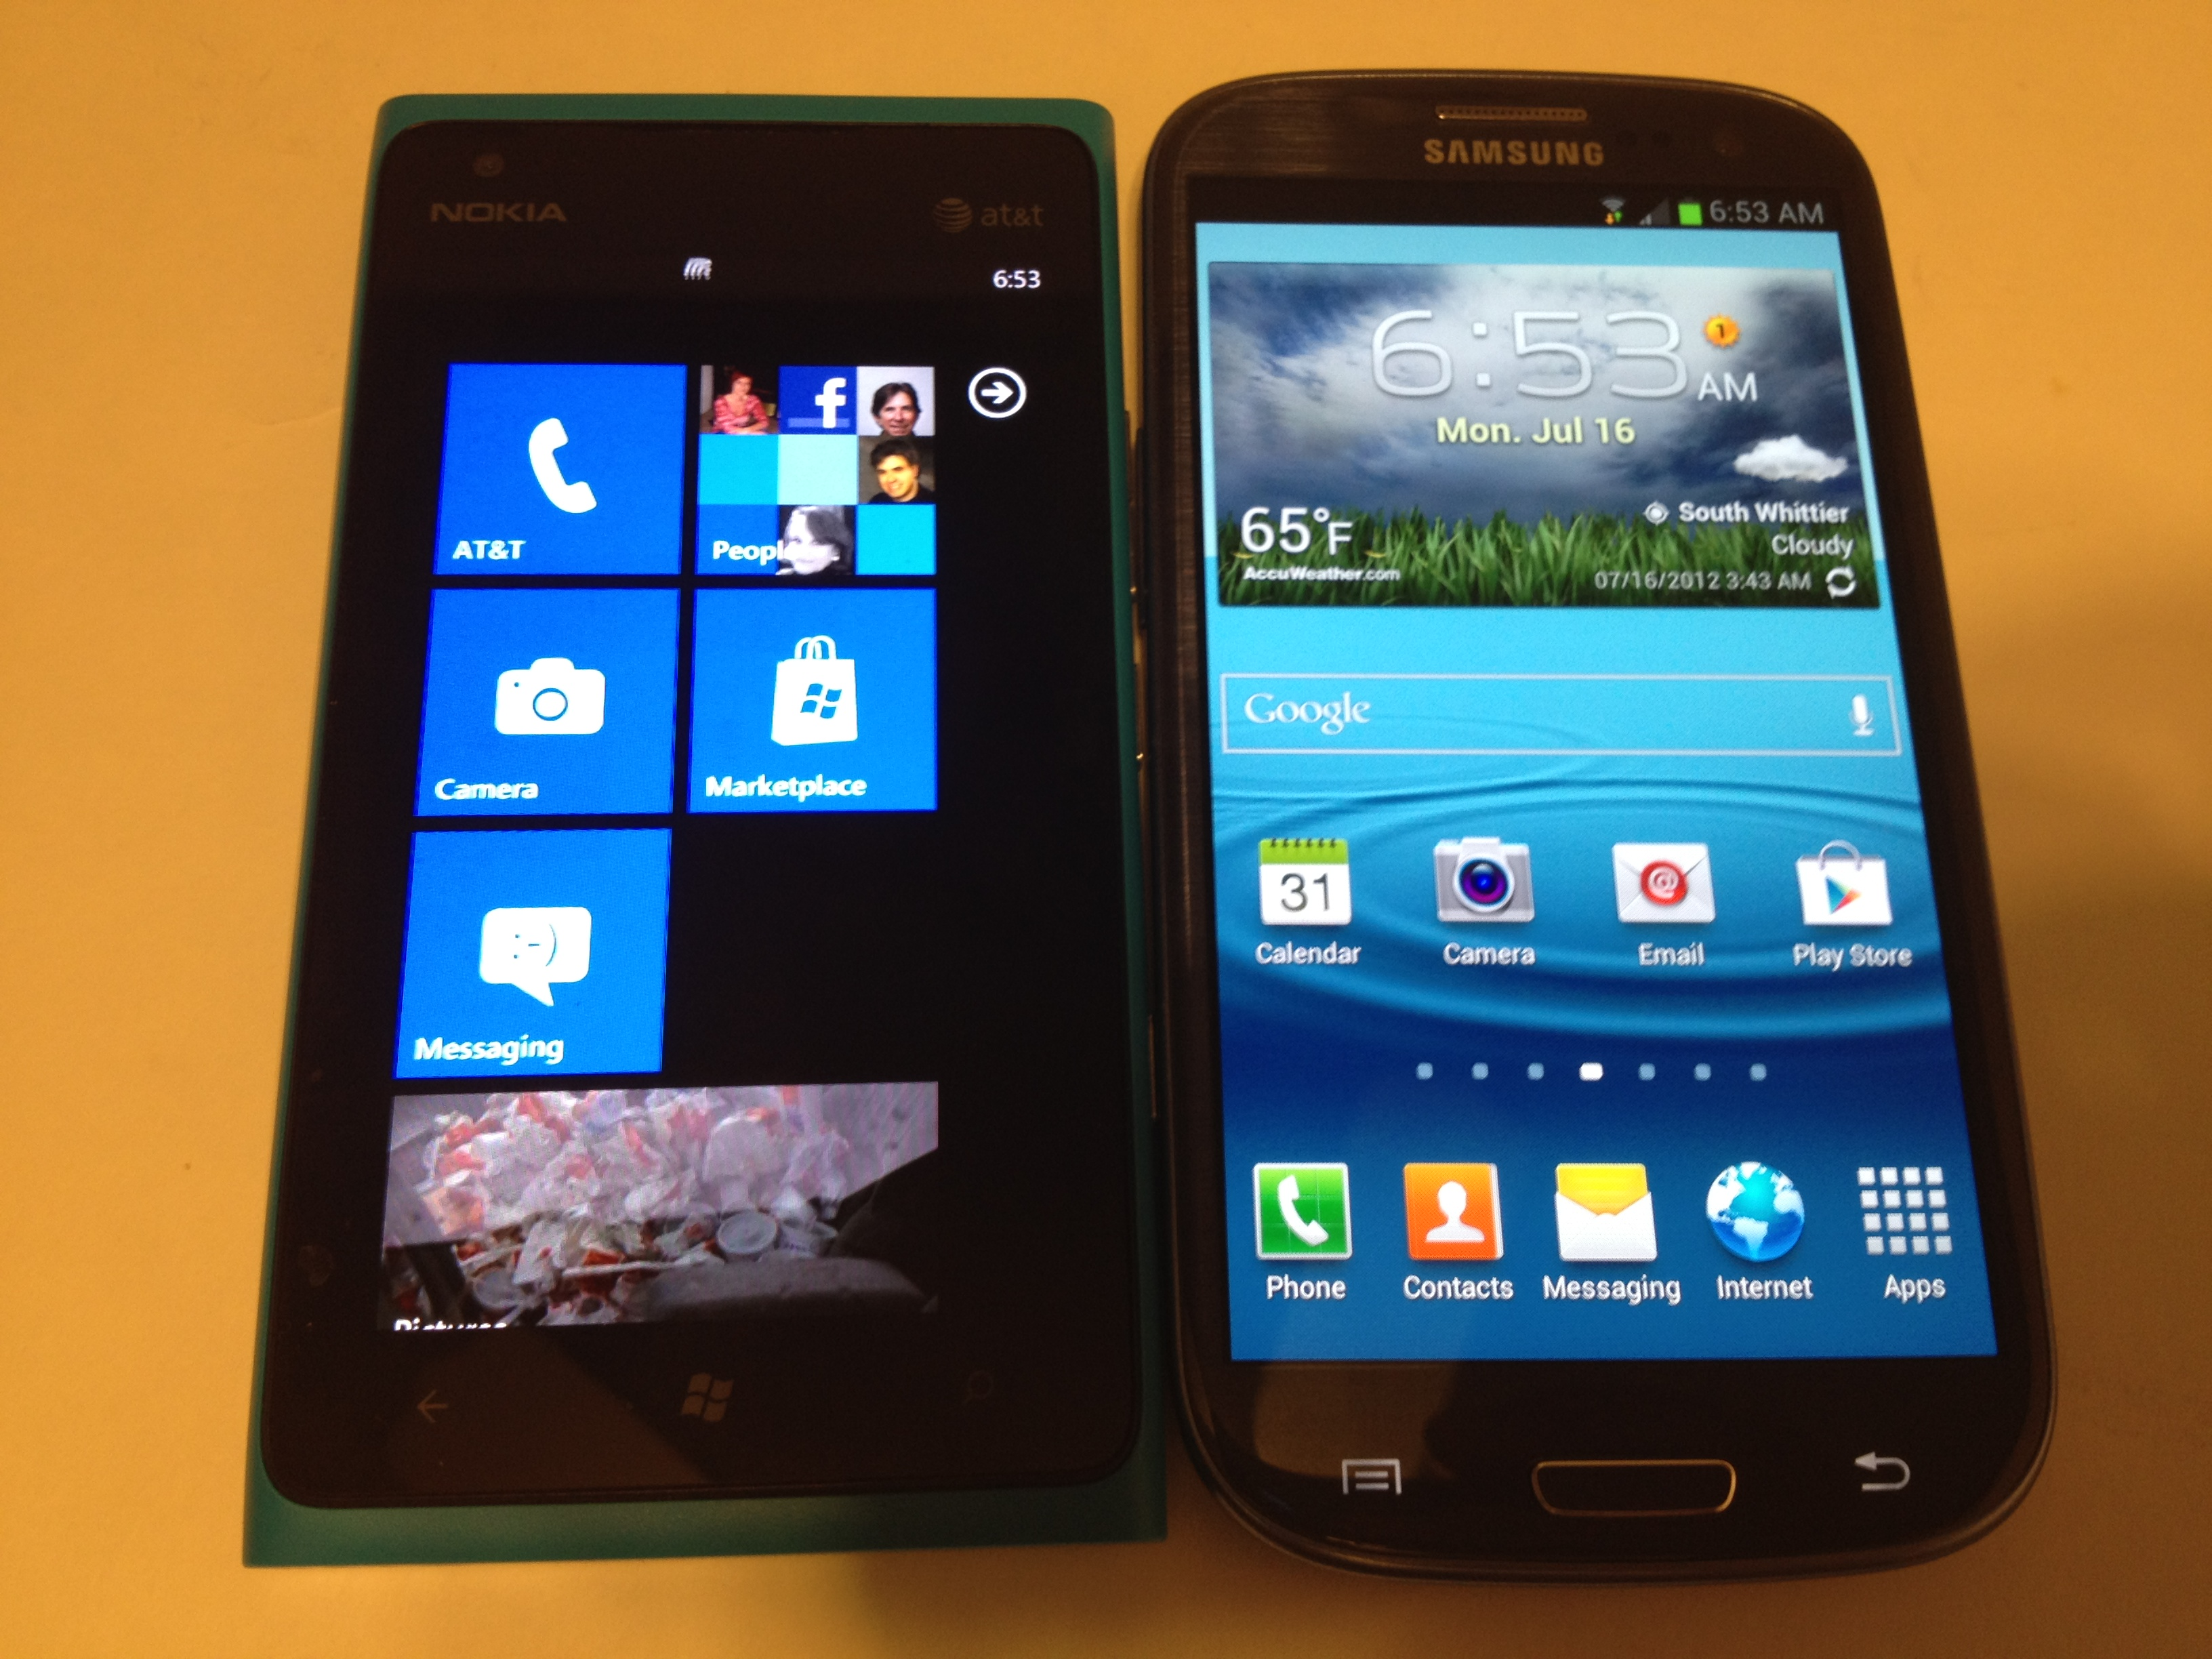 Samsung Galaxy S3 vs. Nokia Lumia 900 Comparison Review #